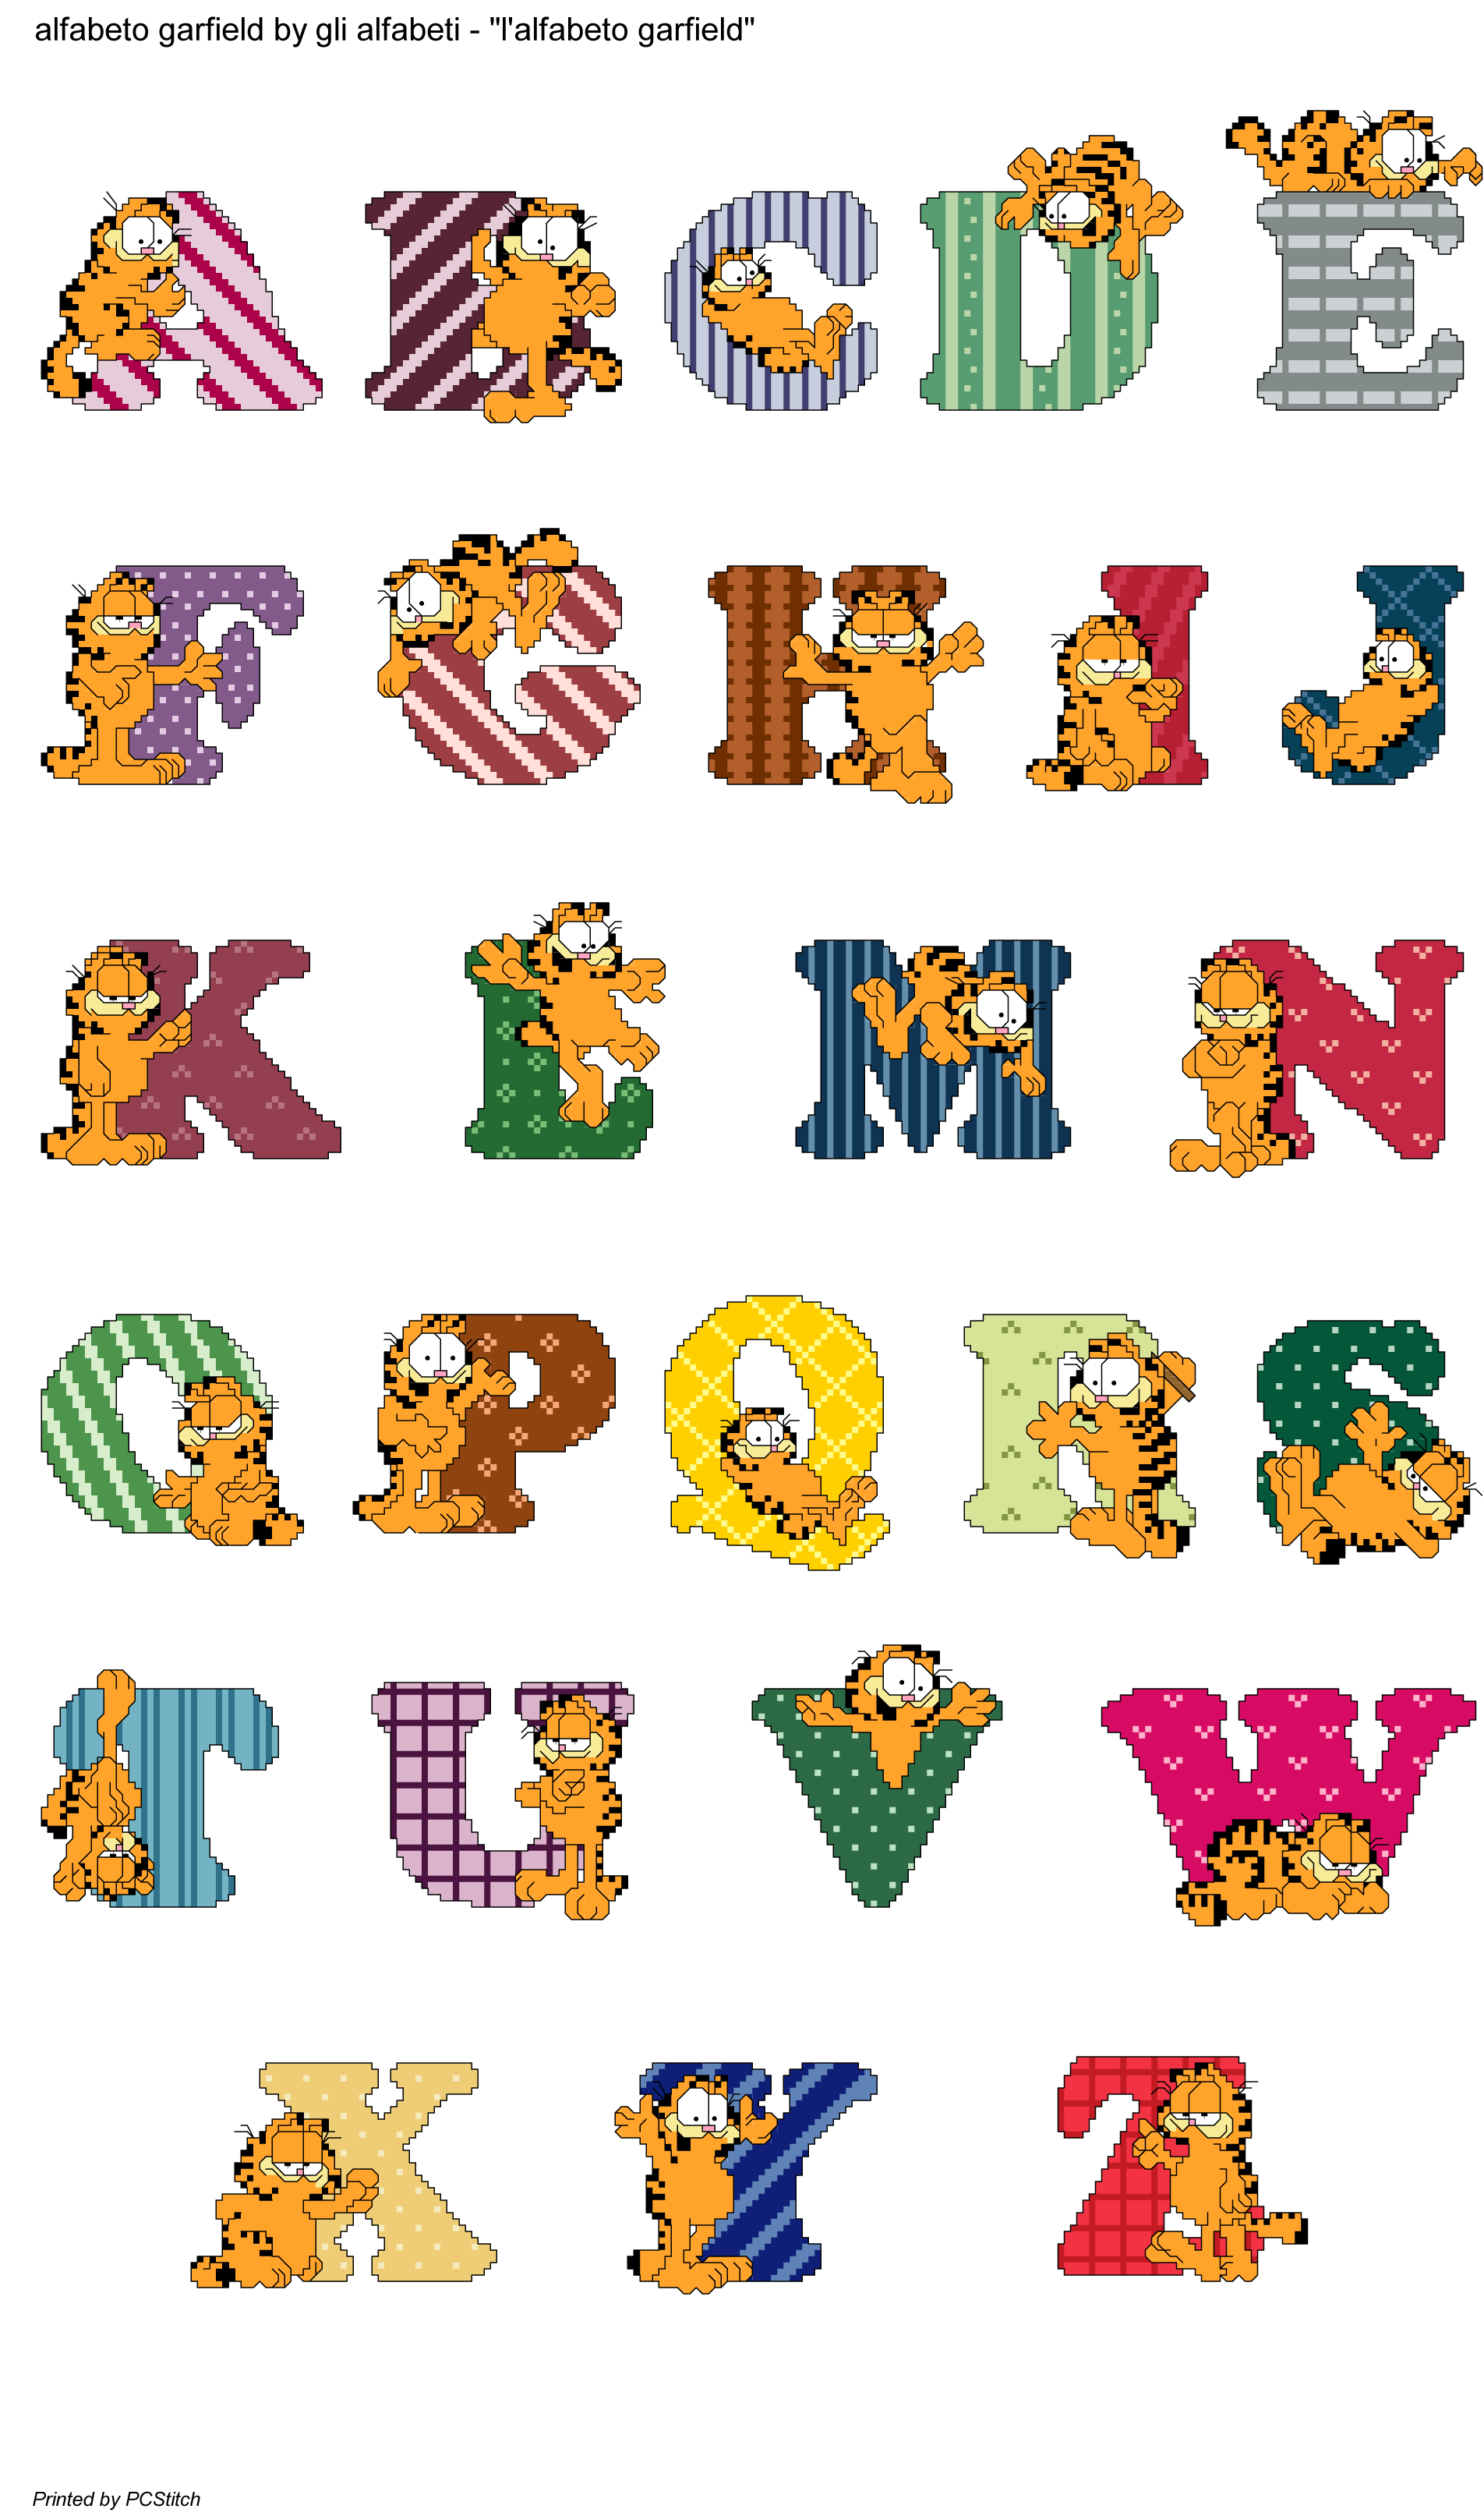 Alfabeto garfield kirjaimet numerot. Stitch clipart cross stitch